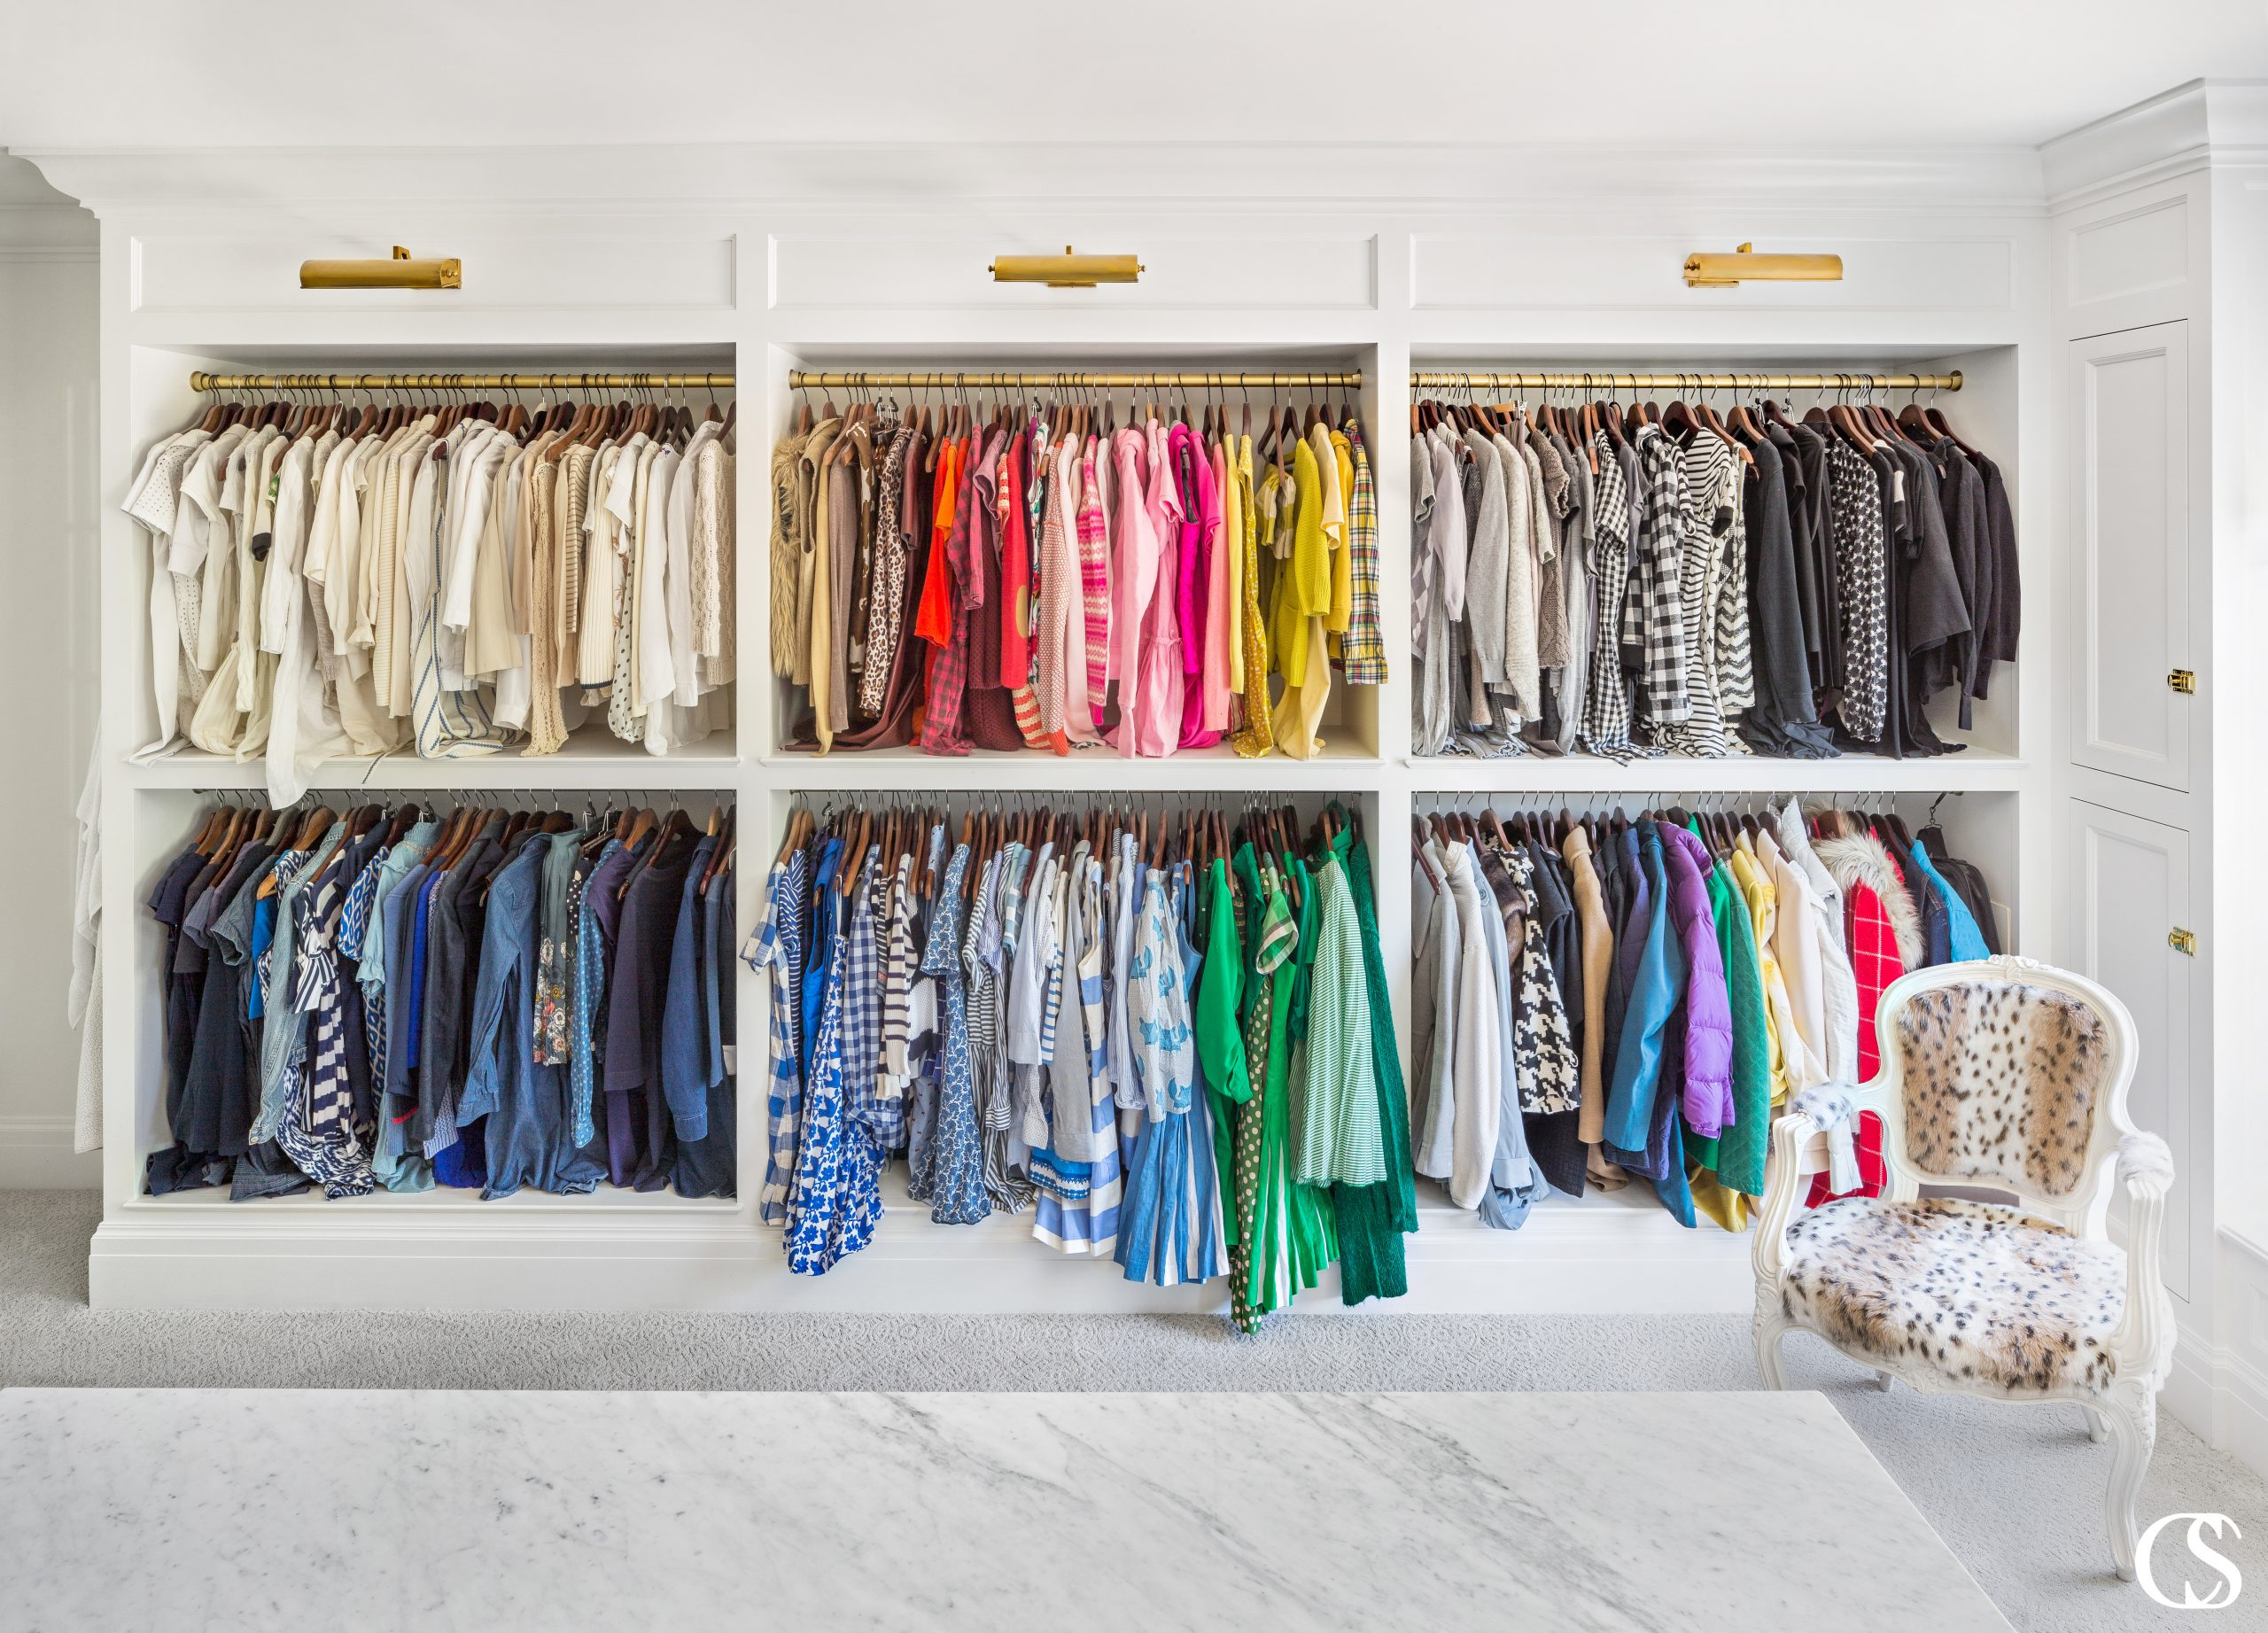 The best built in custom cabinet for your closet should be a springboard for your items to shine and be easily found—even if you don't organize by the rainbow ;)